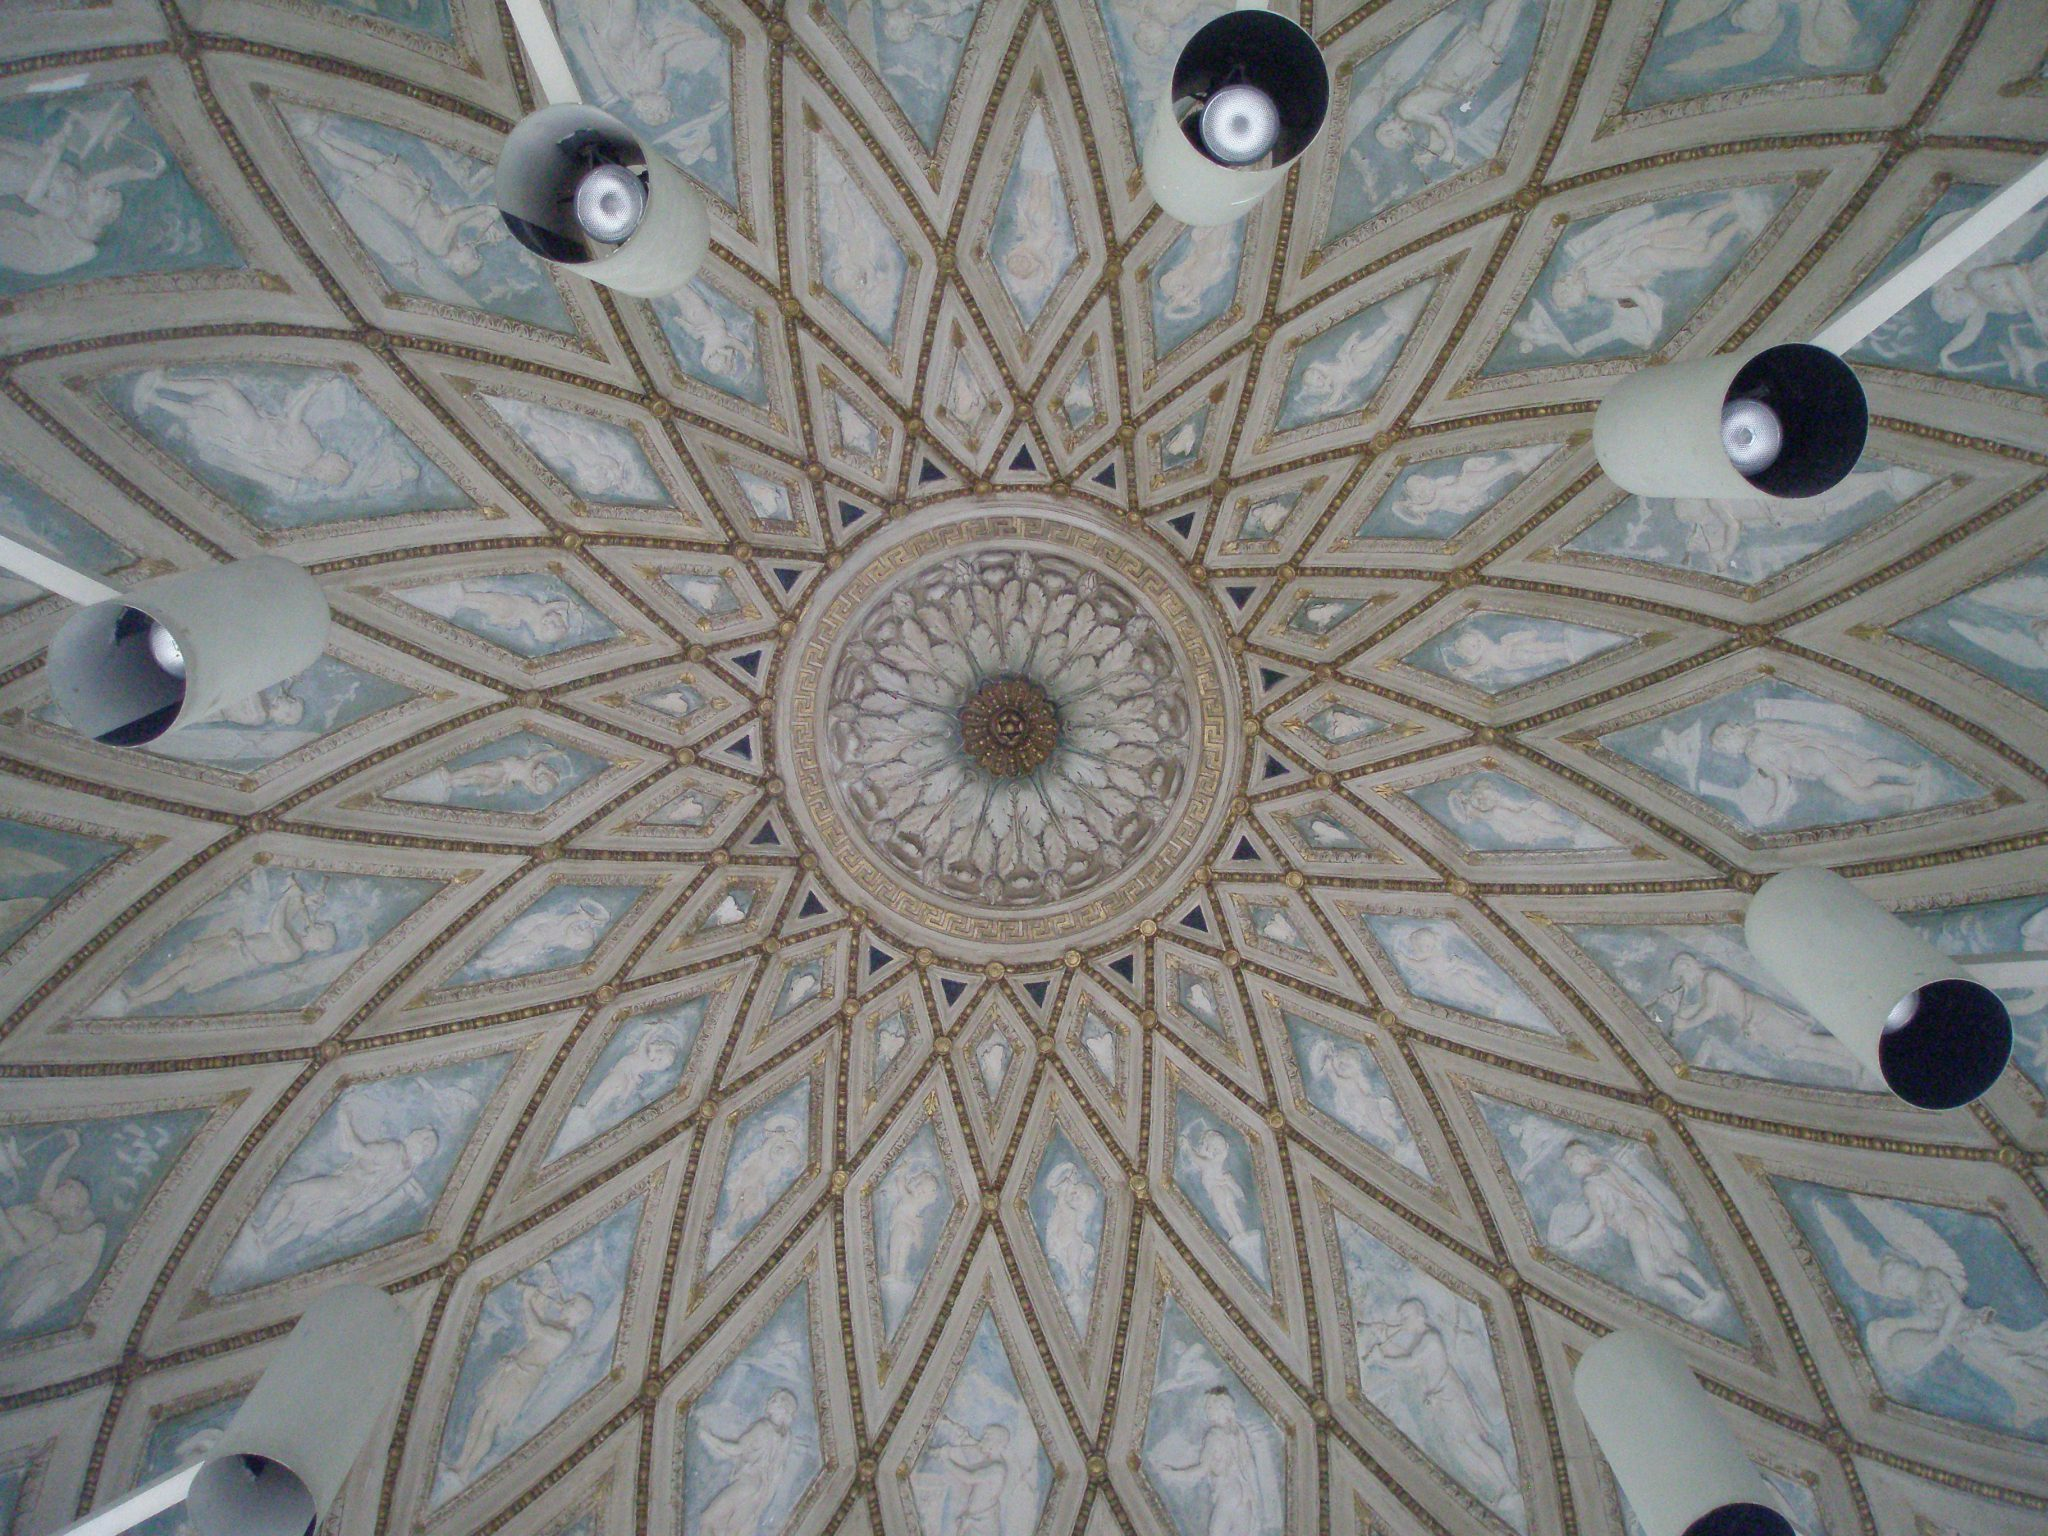 The domed ceiling, over Venus